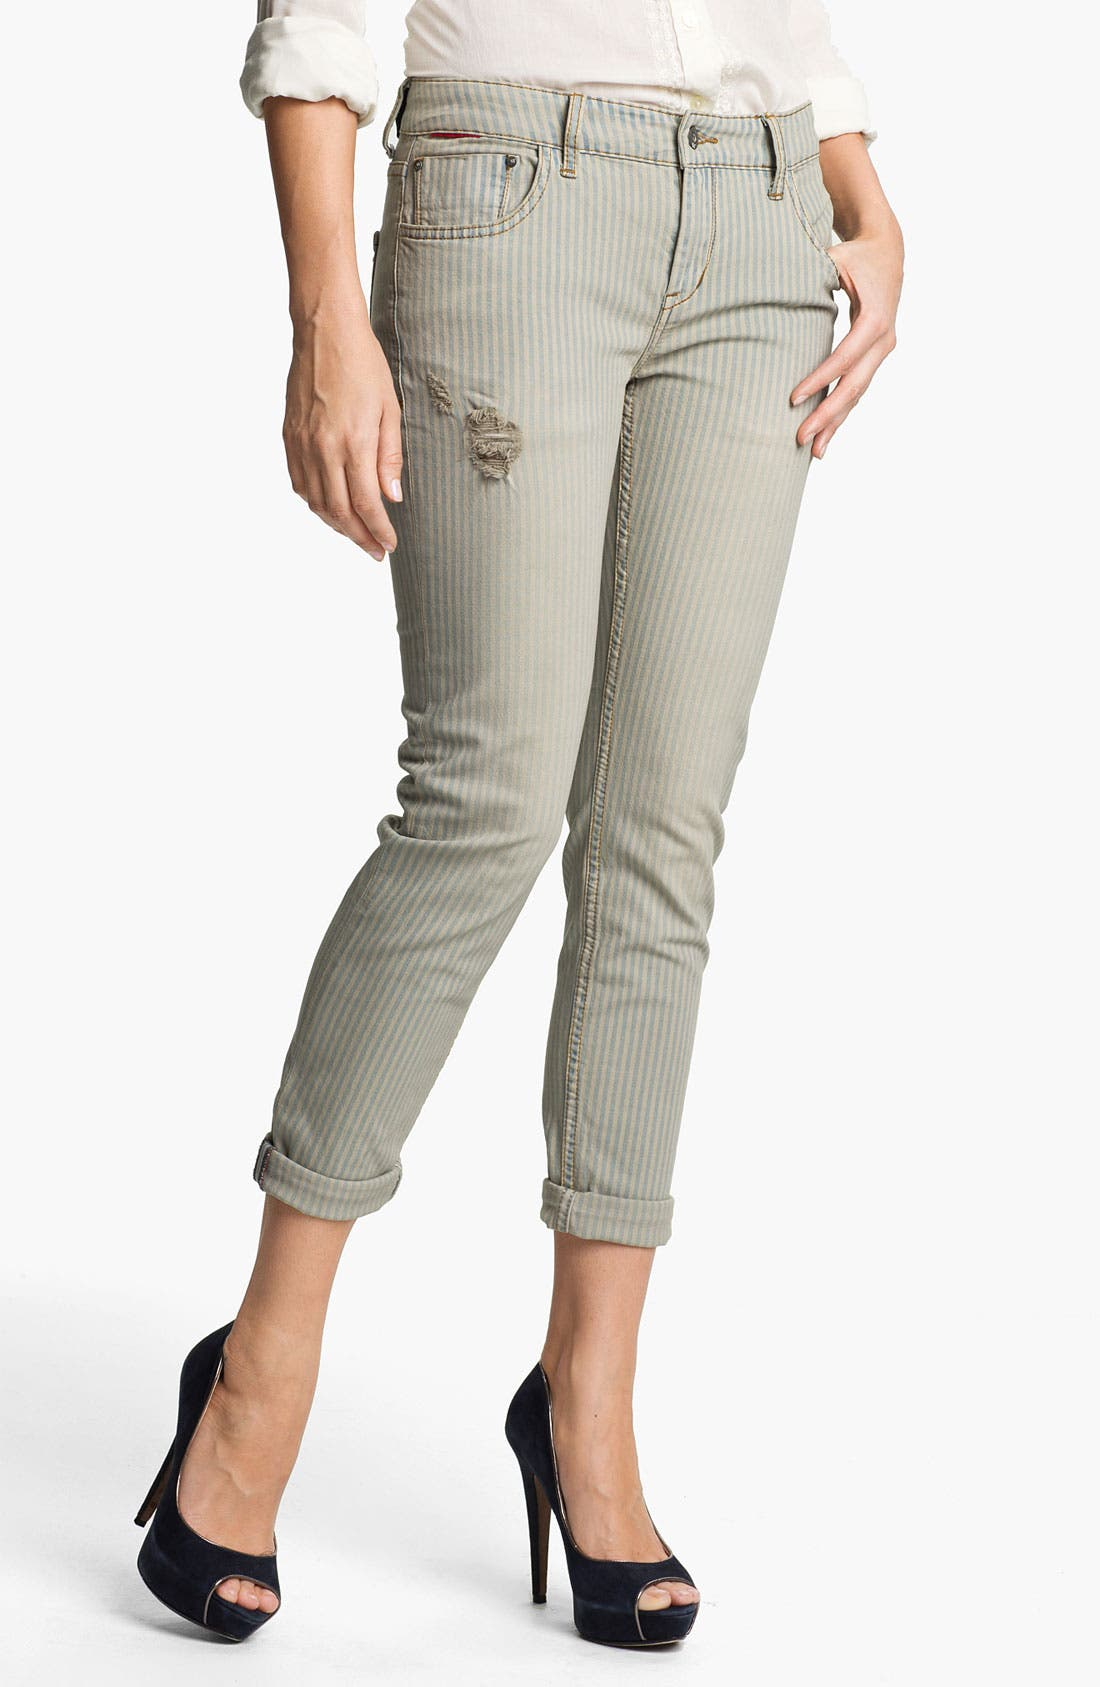 Alternate Image 1 Selected - !iT Collective 'My New Boy' Stripe Ankle Length Straight Leg Jeans